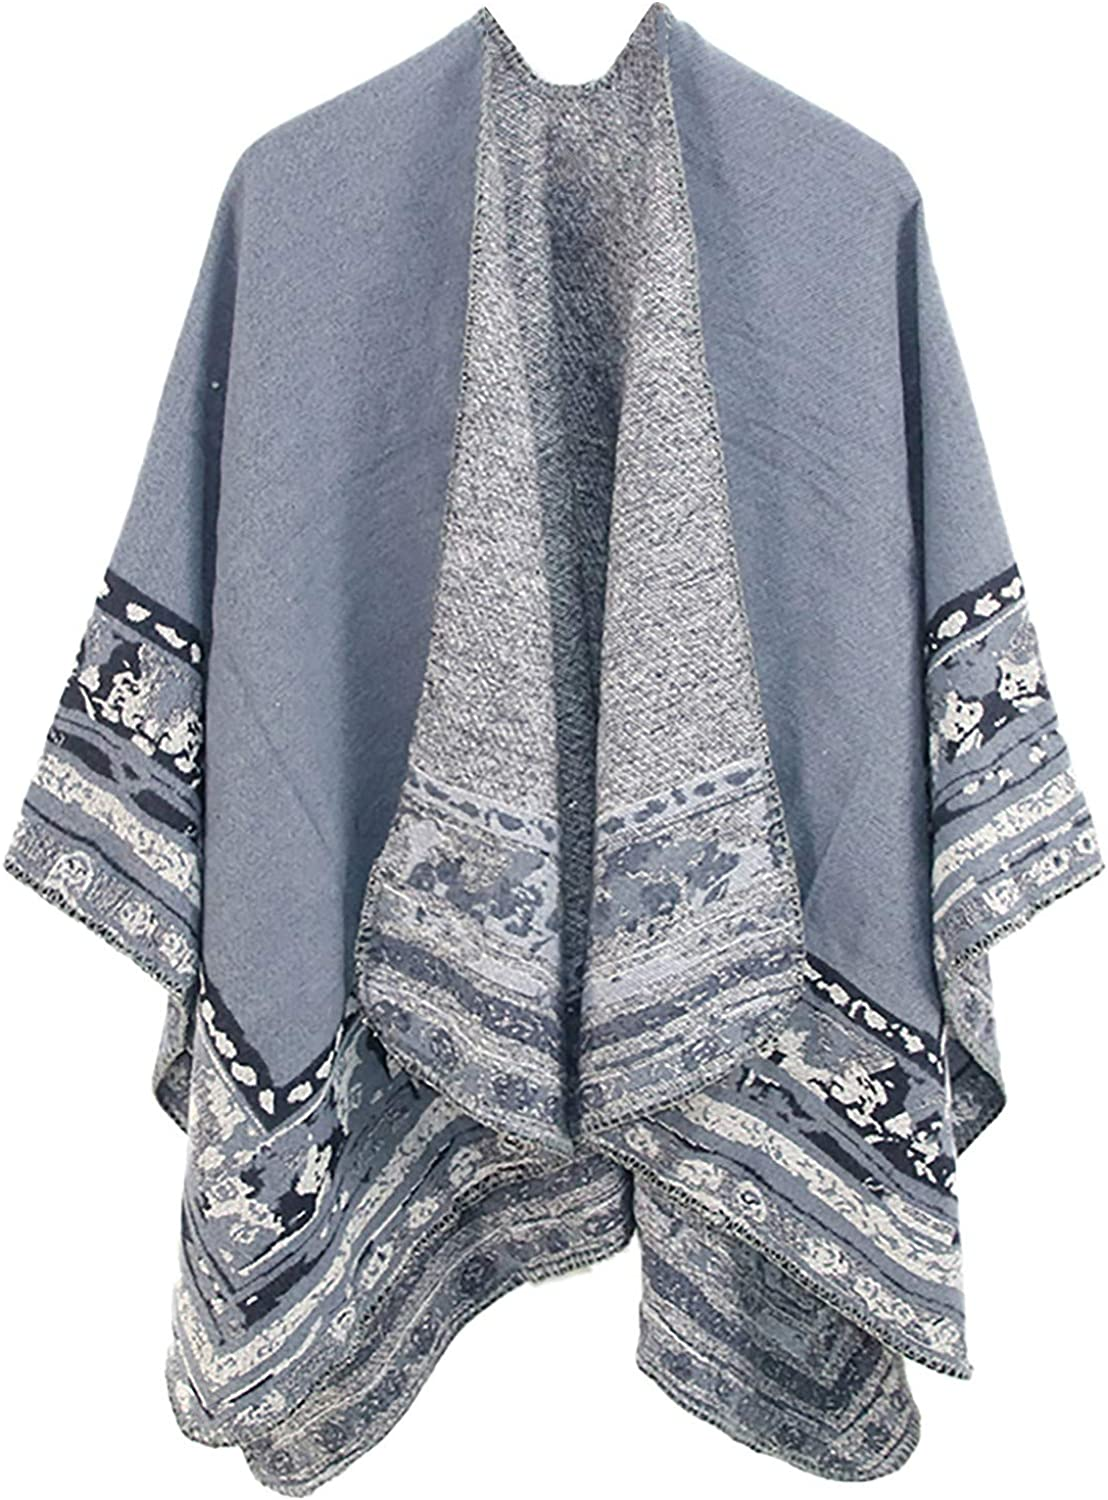 Women Coat Winter Warm Oversized Printing Wra Cape Blanket Popular shop 67% OFF of fixed price is the lowest price challenge